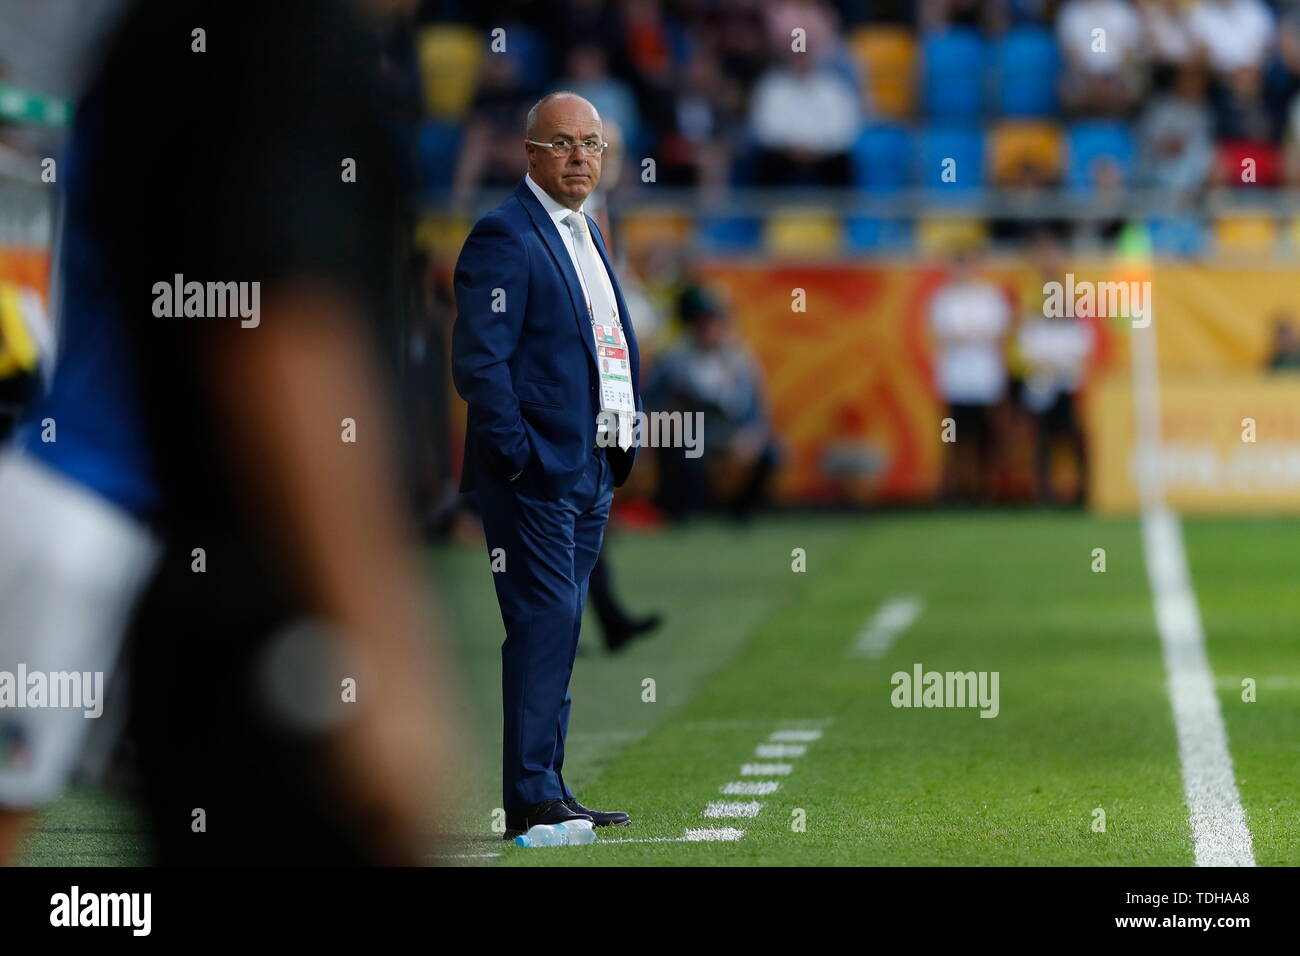 Gdynia, Poland. 14th June, 2019. Jorge Celico (ARG) Football/Soccer : Ecuador head coach Jorge Celico of Argentina during FIFA U-20 World Cup Poland 2019 match for 3rd place between Italy 0-1 Ecuador at the Gdynia Stadium in Gdynia, Poland . Credit: Mutsu KAWAMORI/AFLO/Alamy Live News Stock Photo